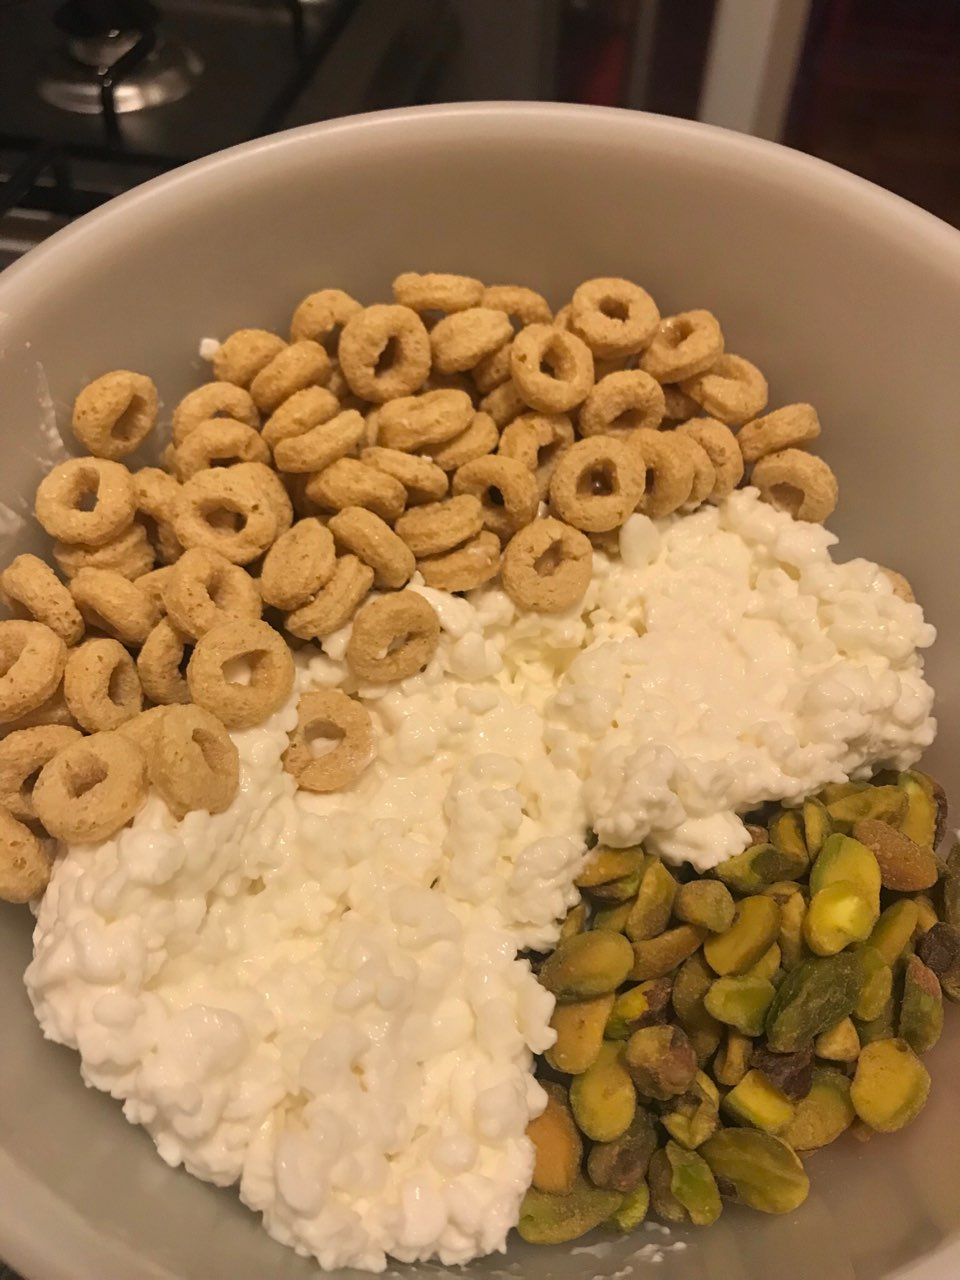 Carb  1 Cup Cascadian Farms Honey Os Cereal (110 Calories) Protein  1 Cup  No Salt Added 1% Cottage Cheese (180 Calo... | Fooducate Diet Motivation